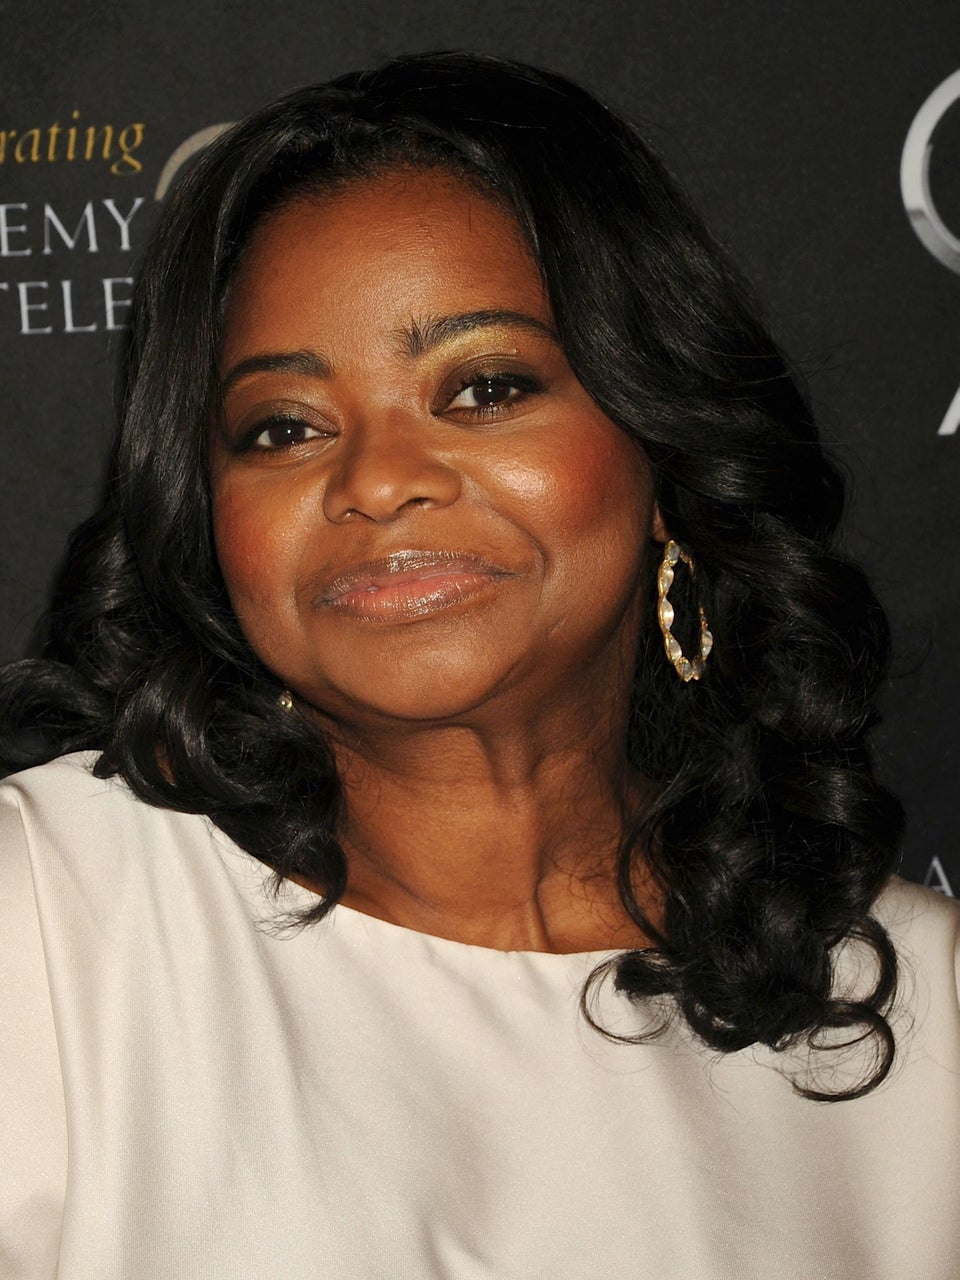 Octavia Spencer: 'I Am Not Conforming to An Unrealistic Model of Beauty'